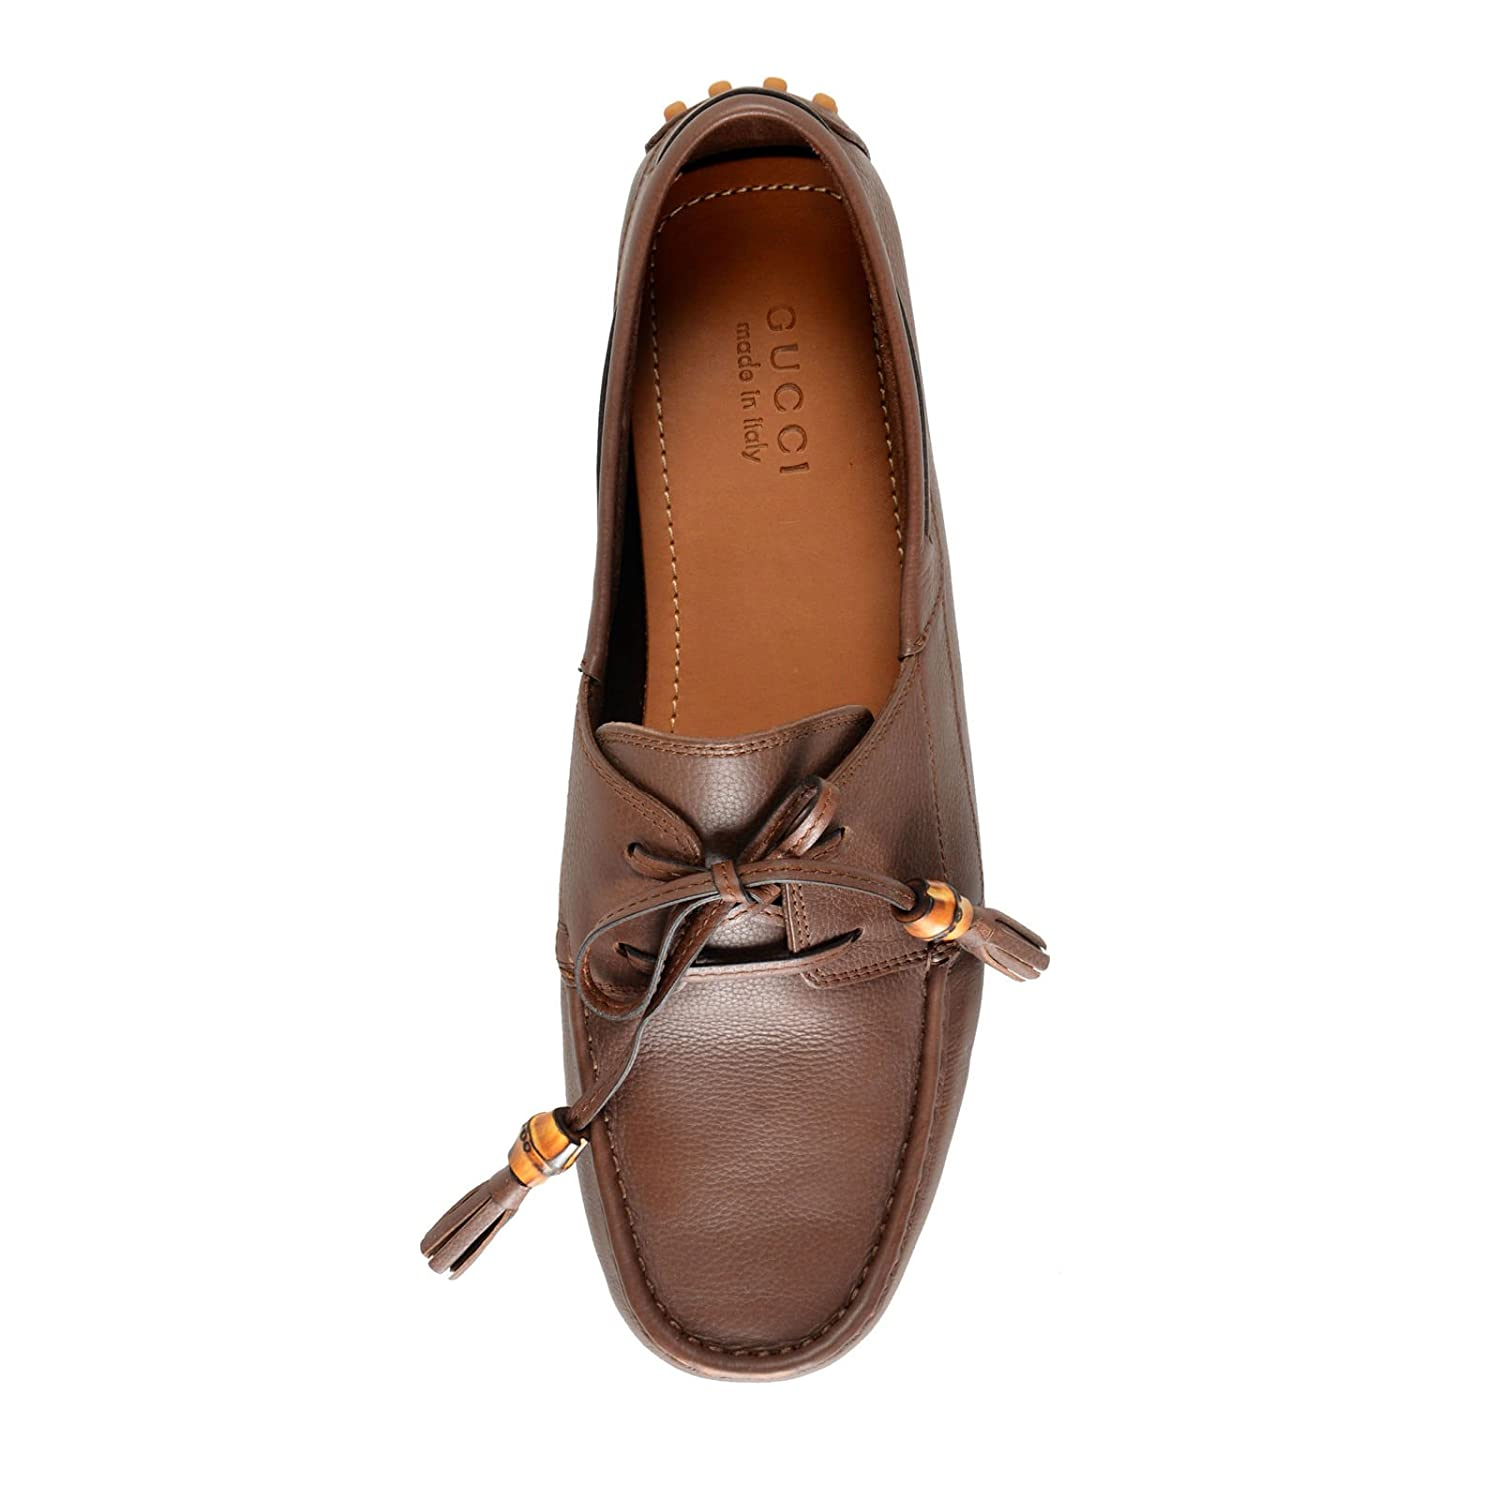 9087dd105 Amazon.com: Gucci Men's Brown Leather Moccasins Slip On Driving Shoes Sz US  11.5 IT 9.5 EU 44.5: Shoes